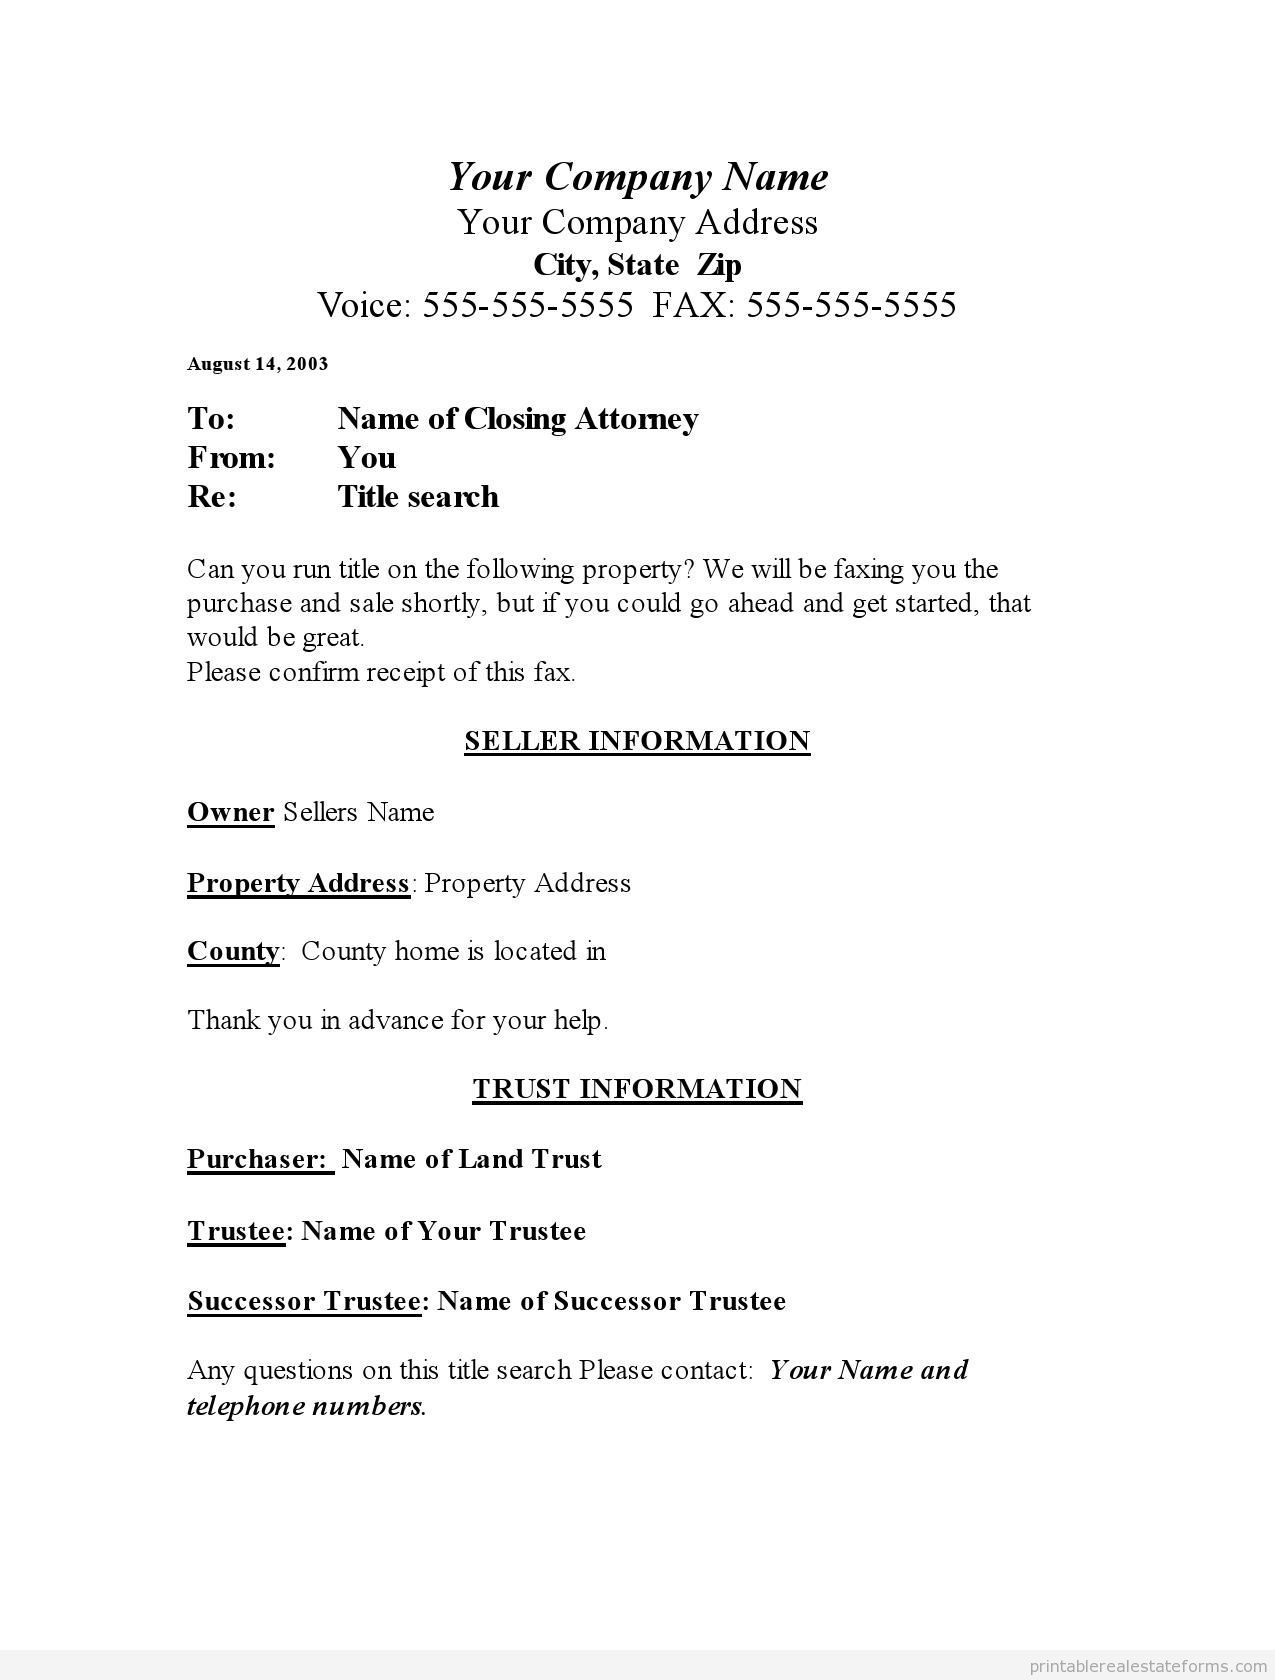 Free Title Search Form Printable Real Estate Forms Real Estate Forms Legal Forms Real Estate Templates